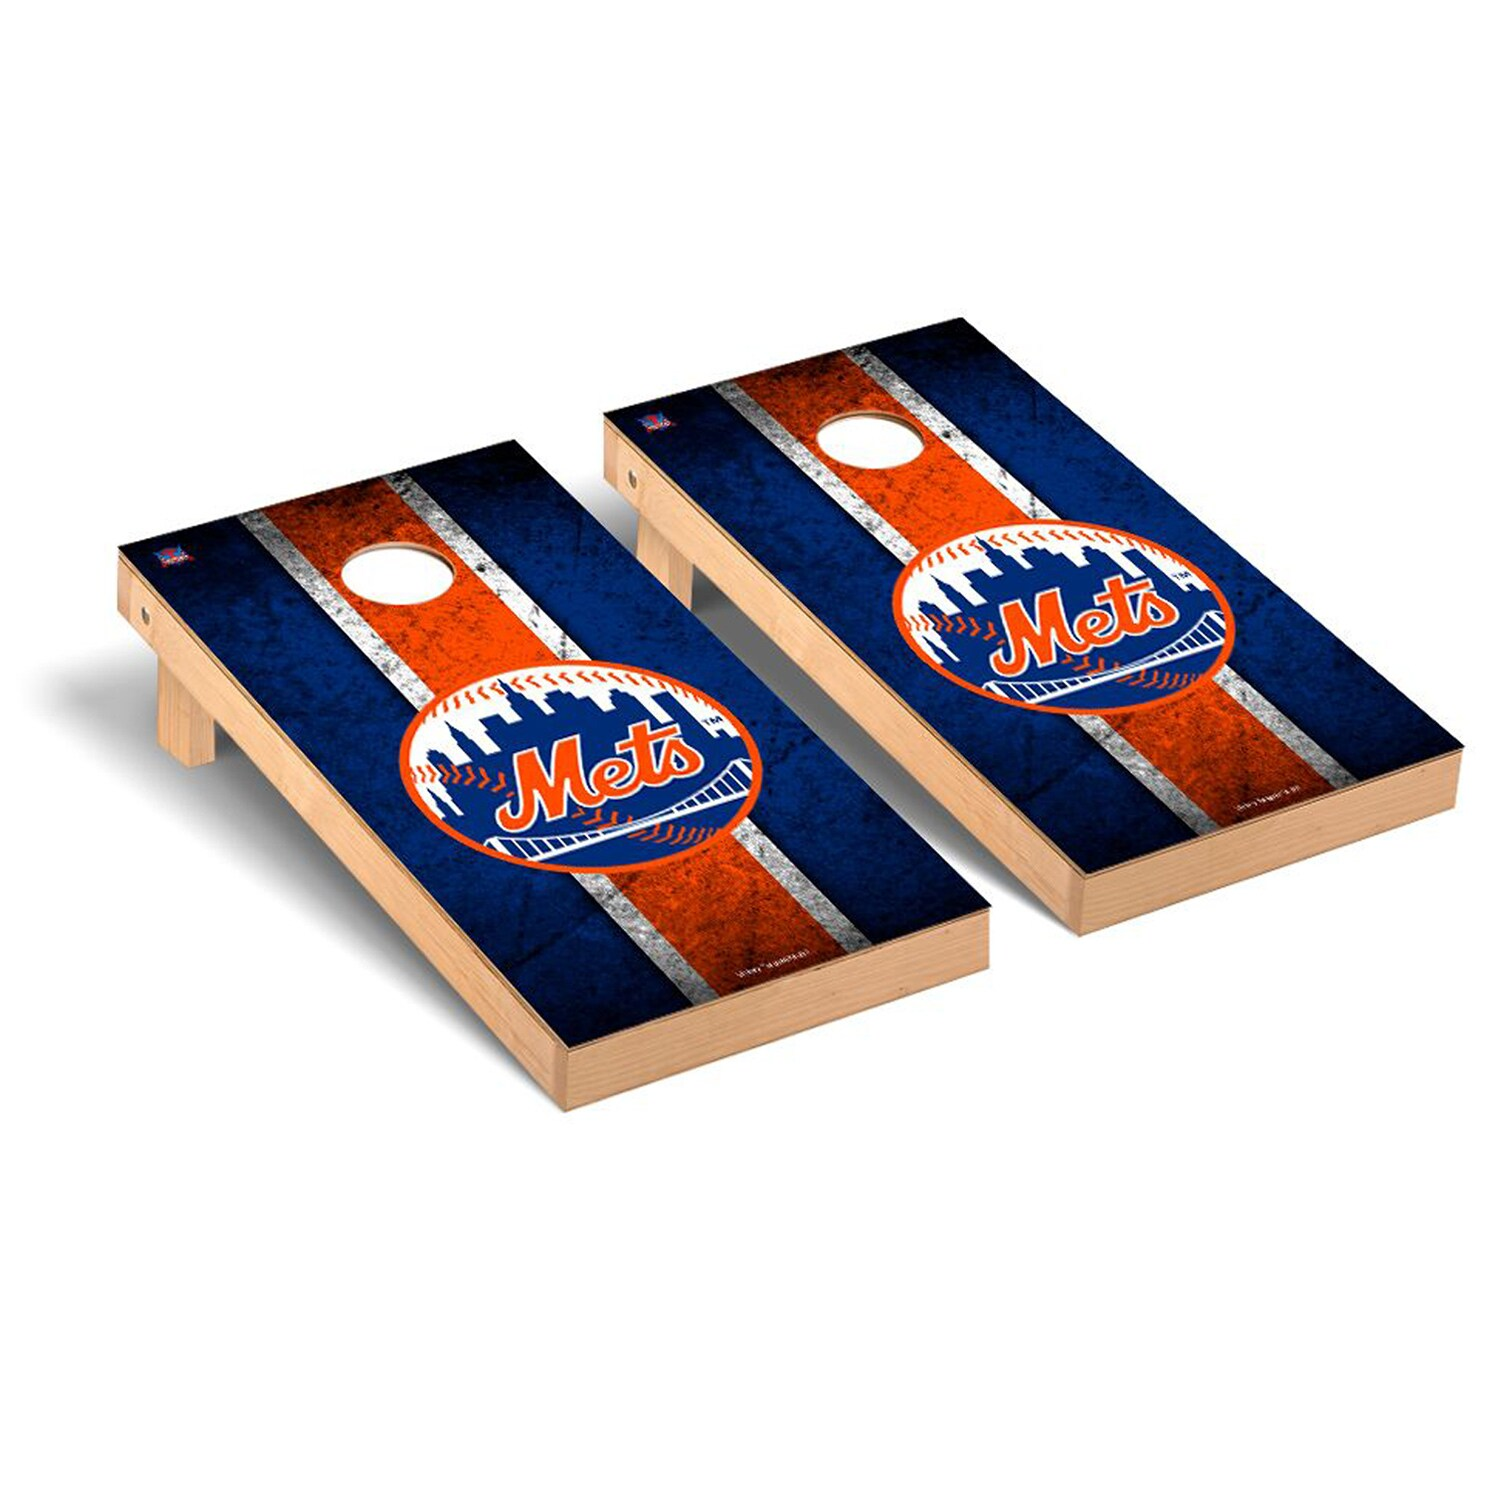 New York Mets 2' x 4' Vintage Cornhole Board Tailgate Toss Set